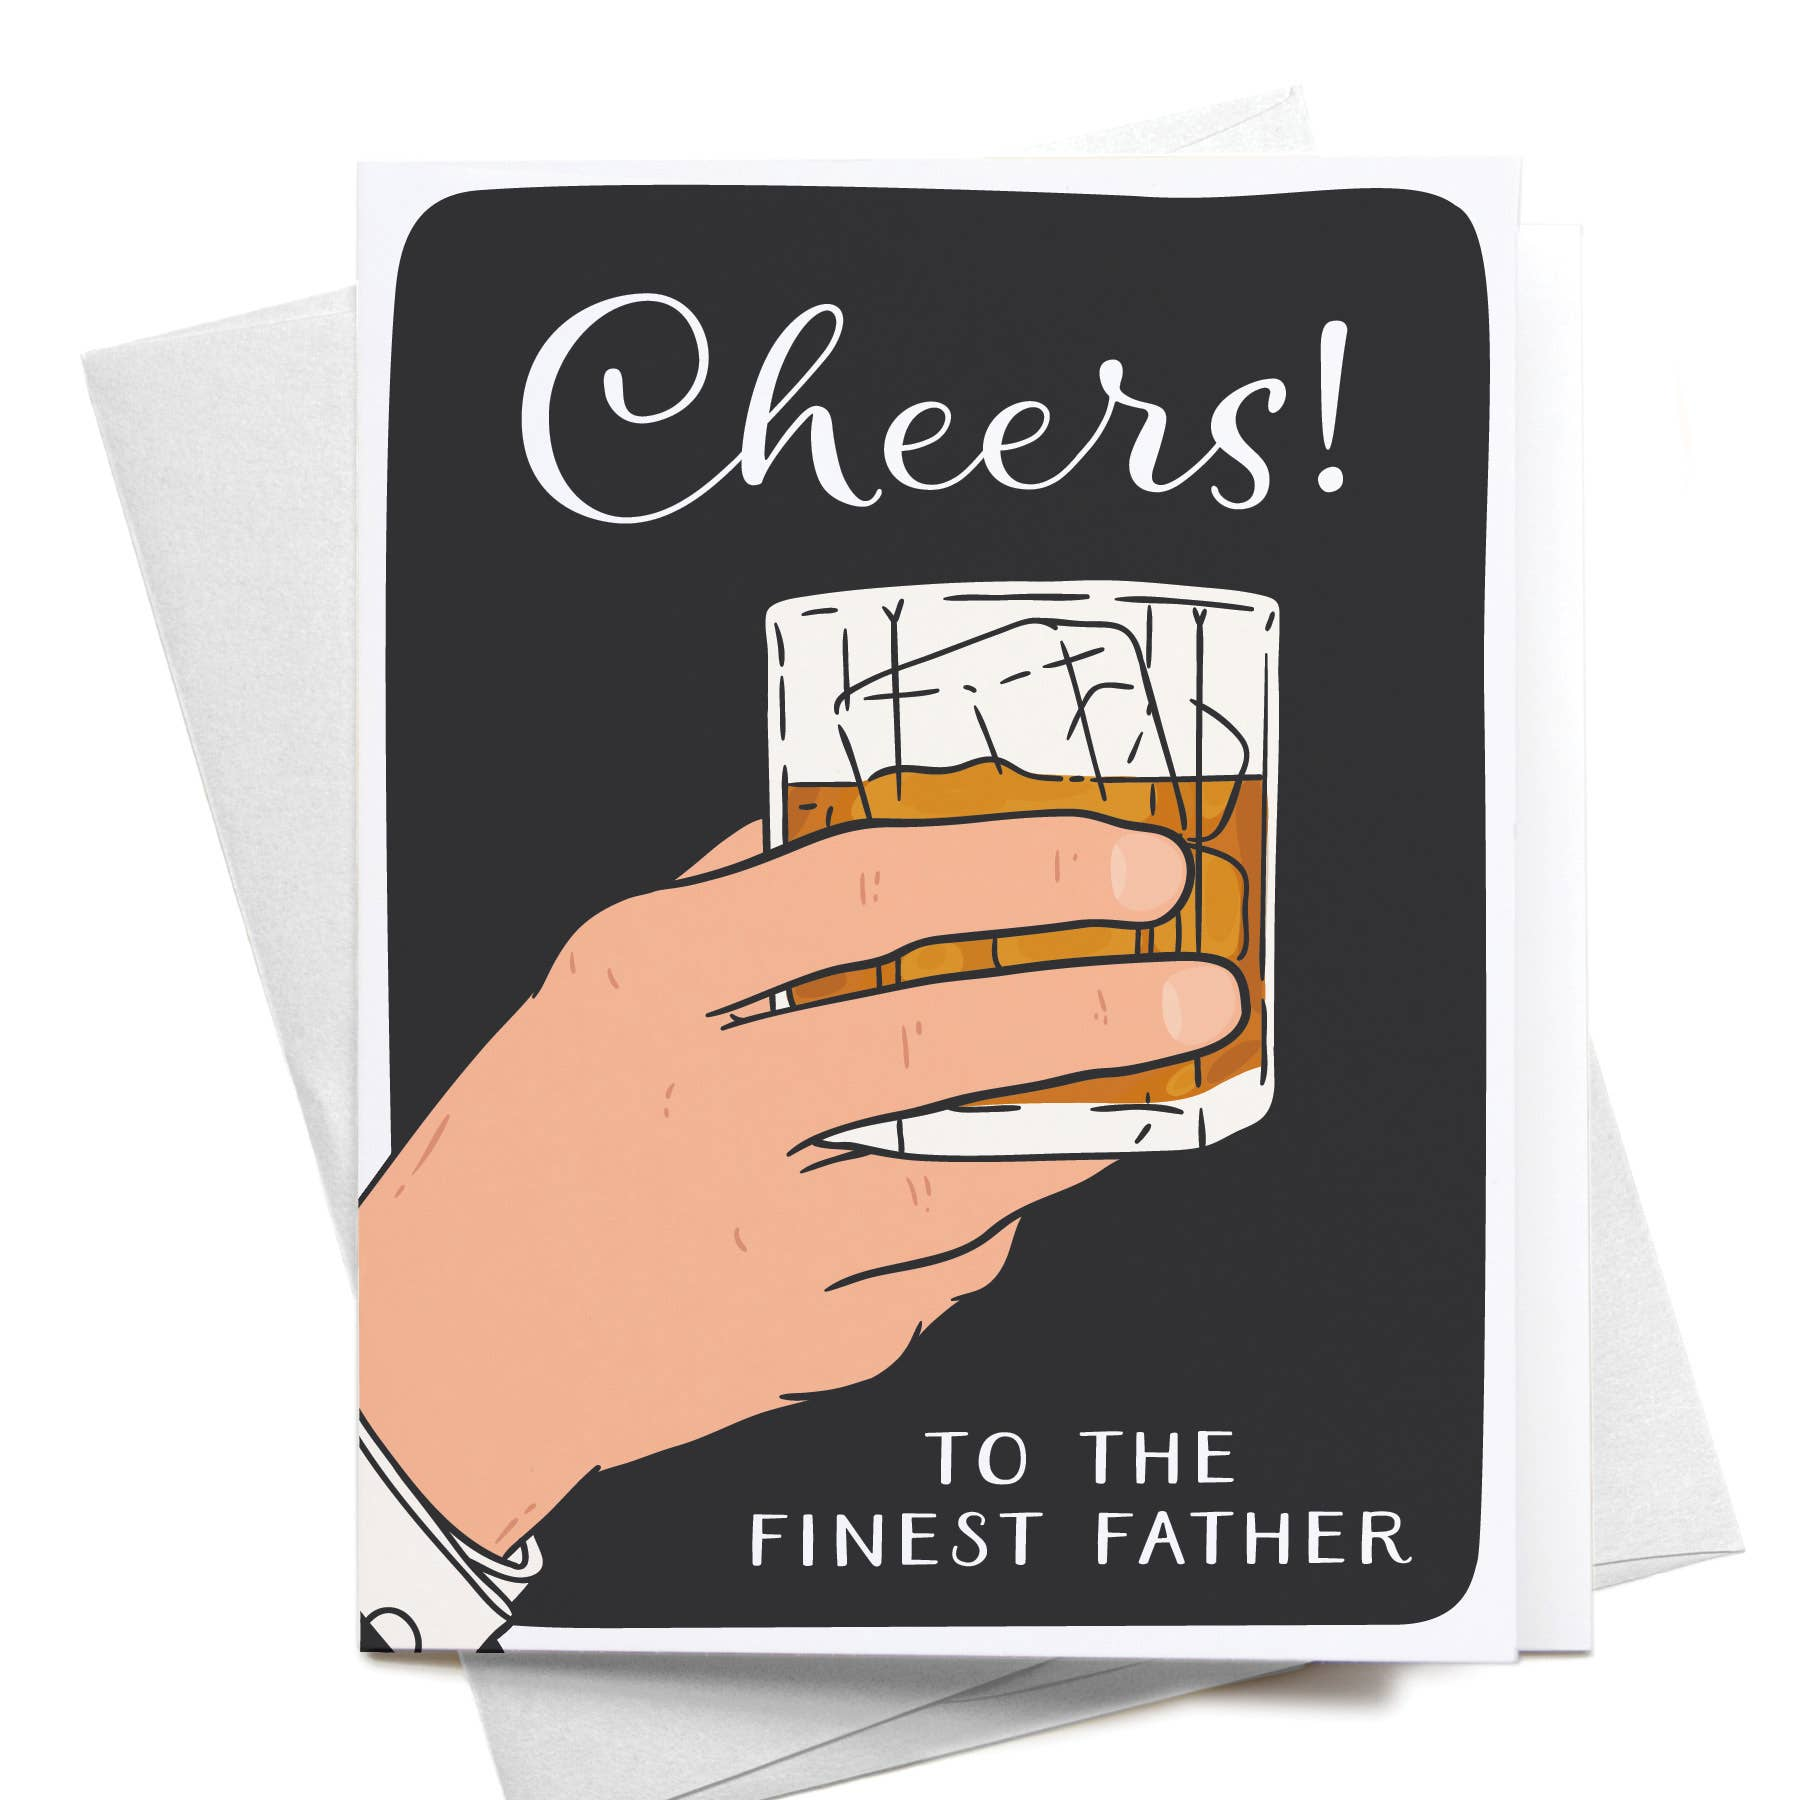 Cheers to the Finest Father